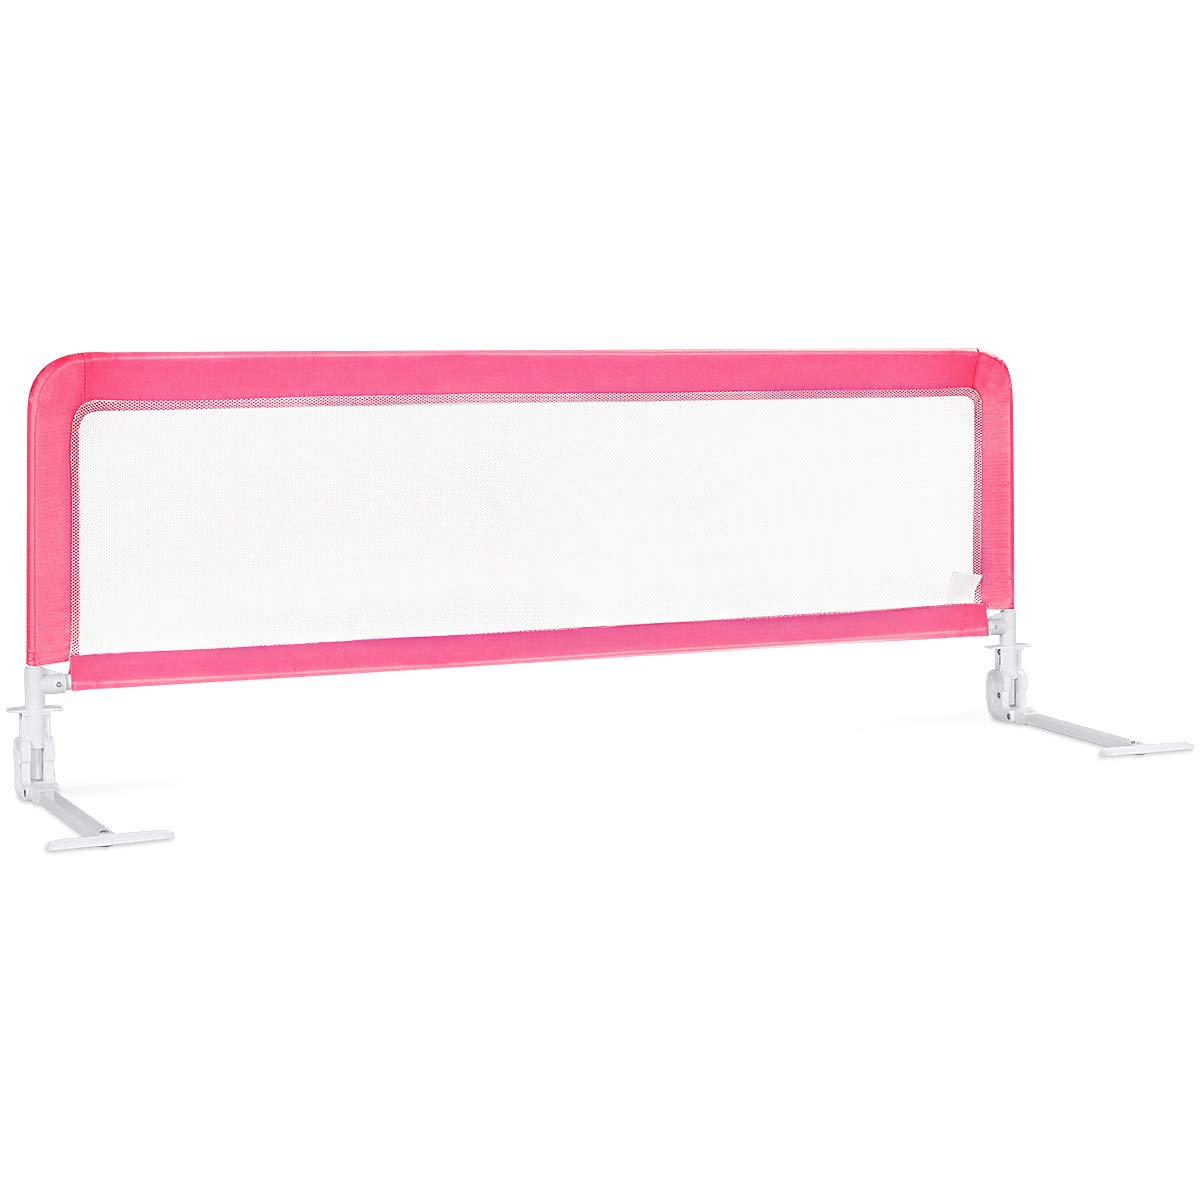 BABY JOY Toddlers Bed Rail Guard, Stainless Steel Folding Safety Bed Guard, Swing Down Bedrail for Convertible Crib, Kids Twin, Double, Full Size Queen & King (Pink, 59-Inch)